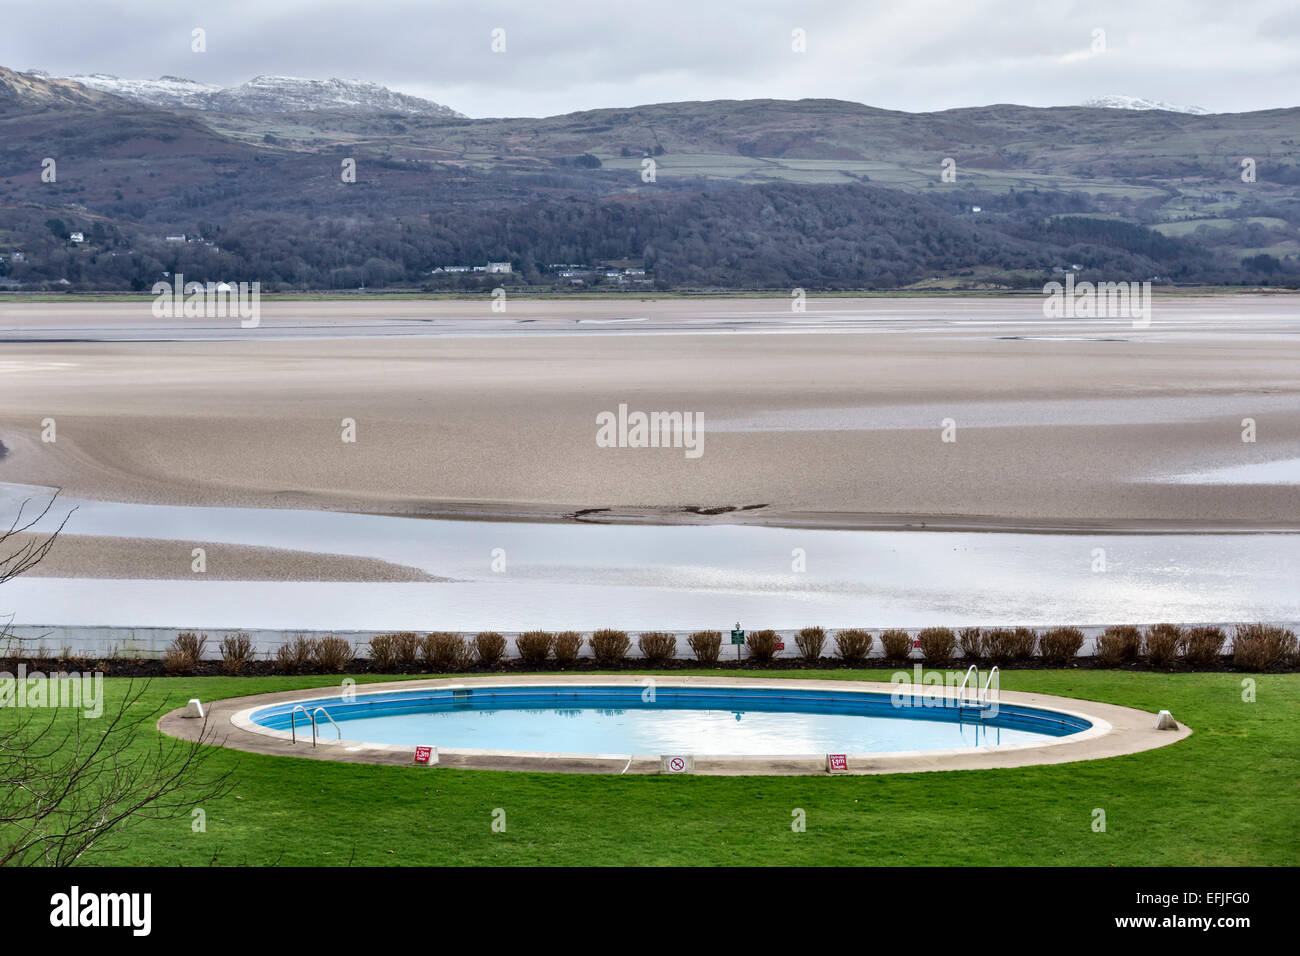 Portmeirion north wales the portmeirion hotel swimming pool stock photo 78468656 alamy for North wales hotels with swimming pools